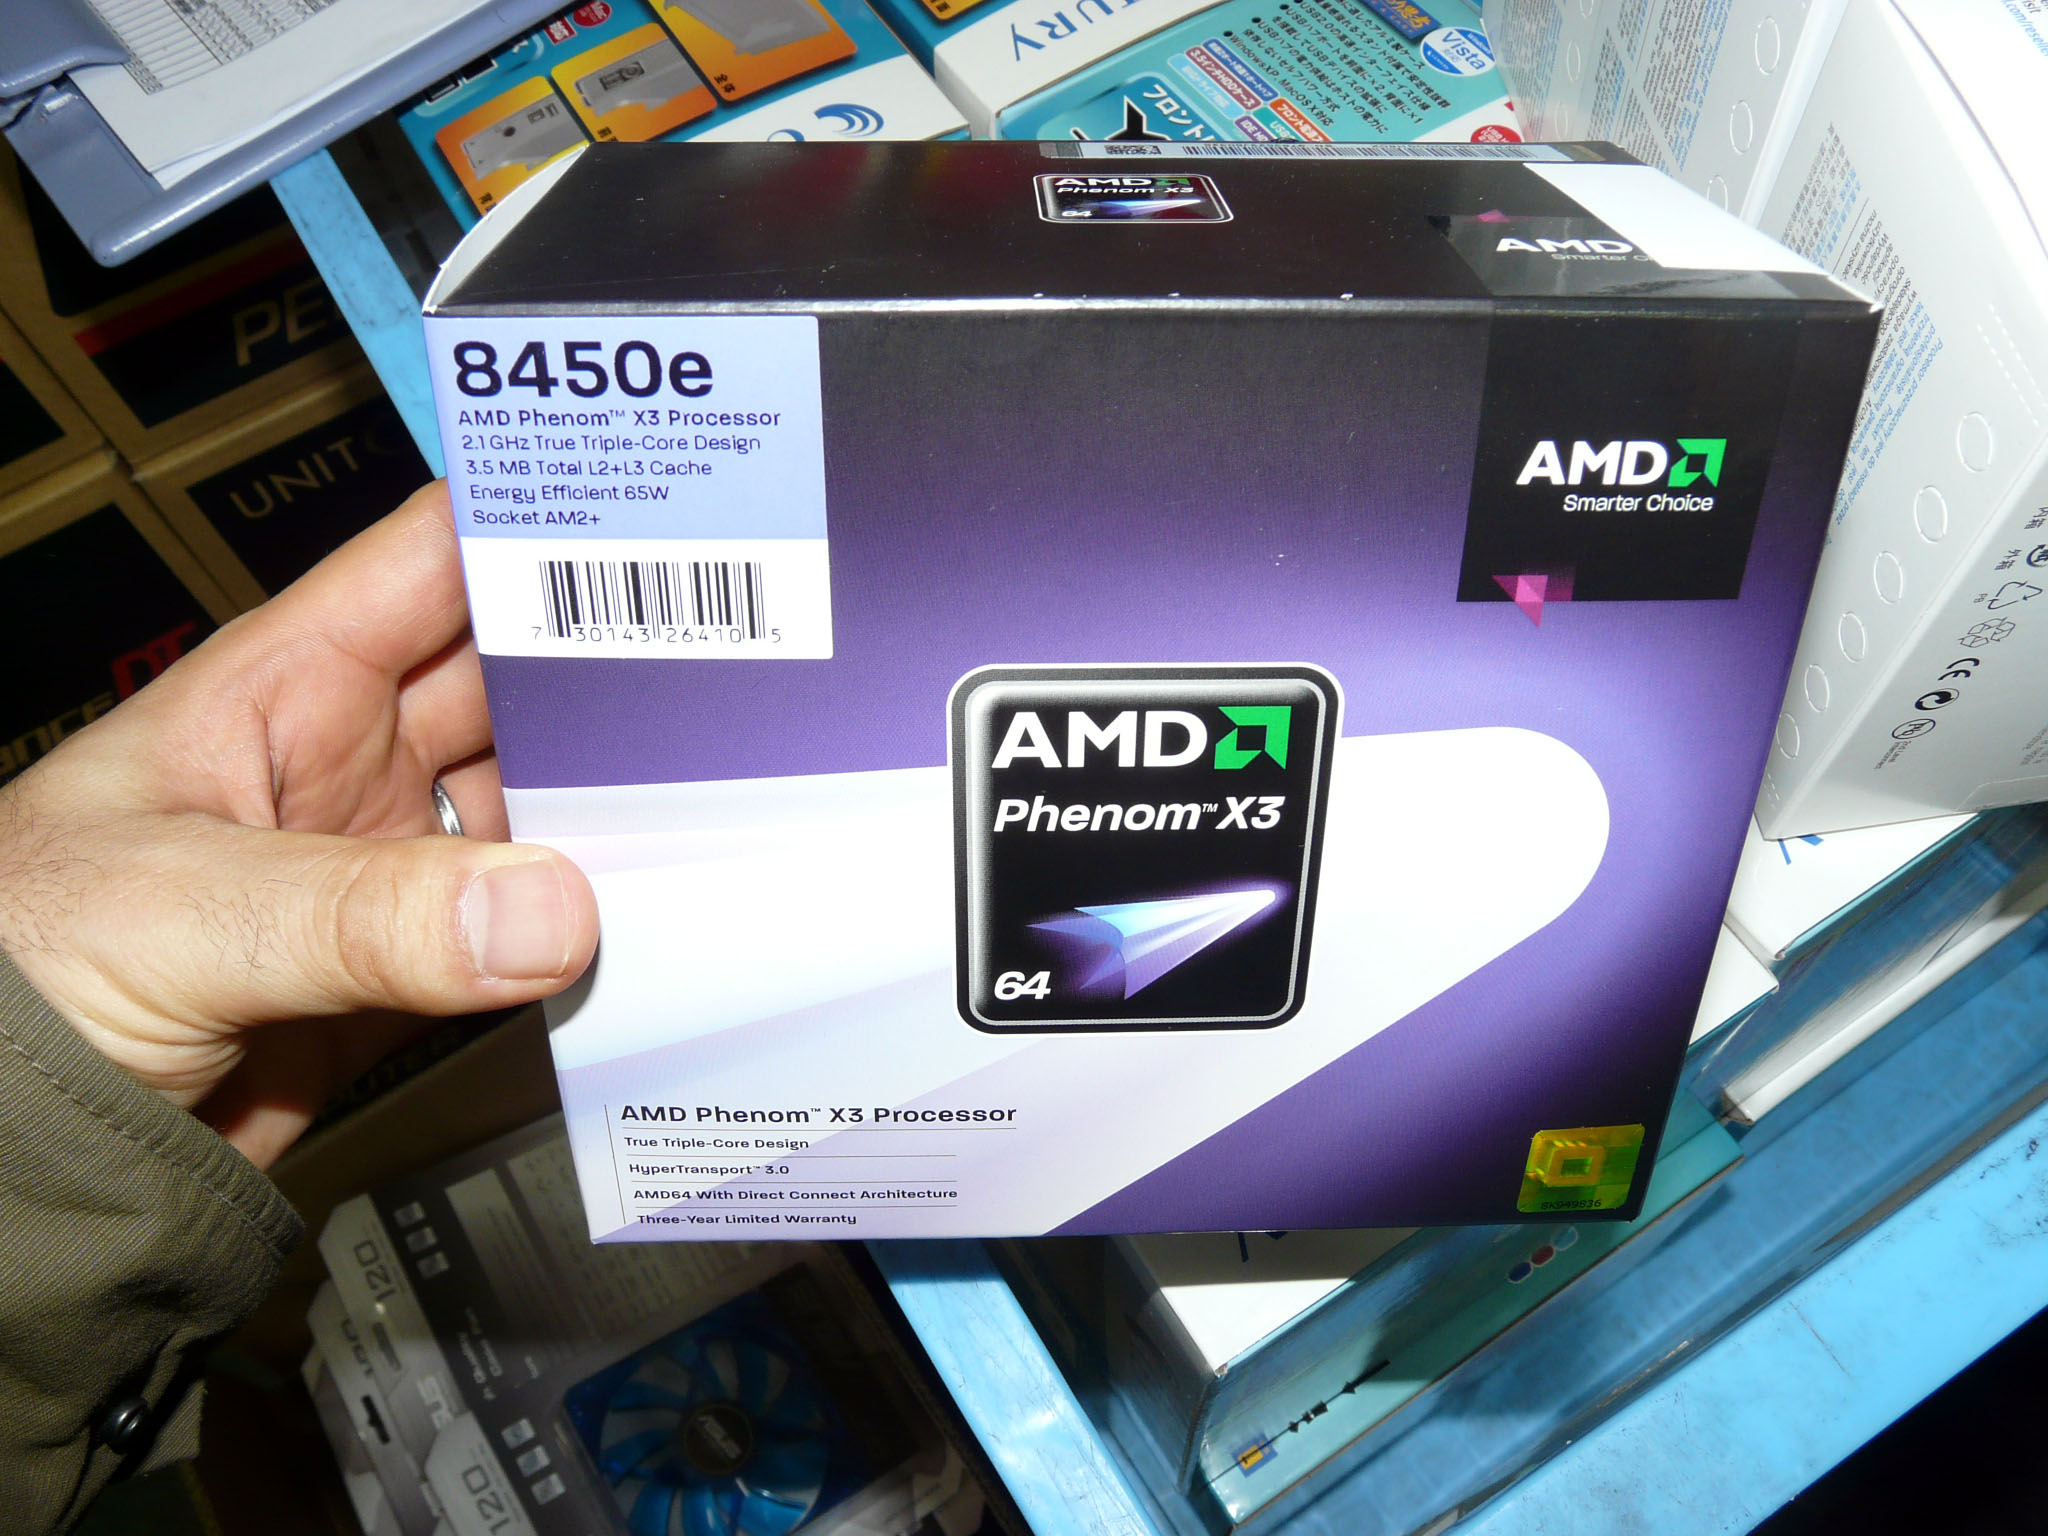 Amd Phenom(Tm) Ii P820 Triple Core Processor X3 ~1800 Mhz Разогнать